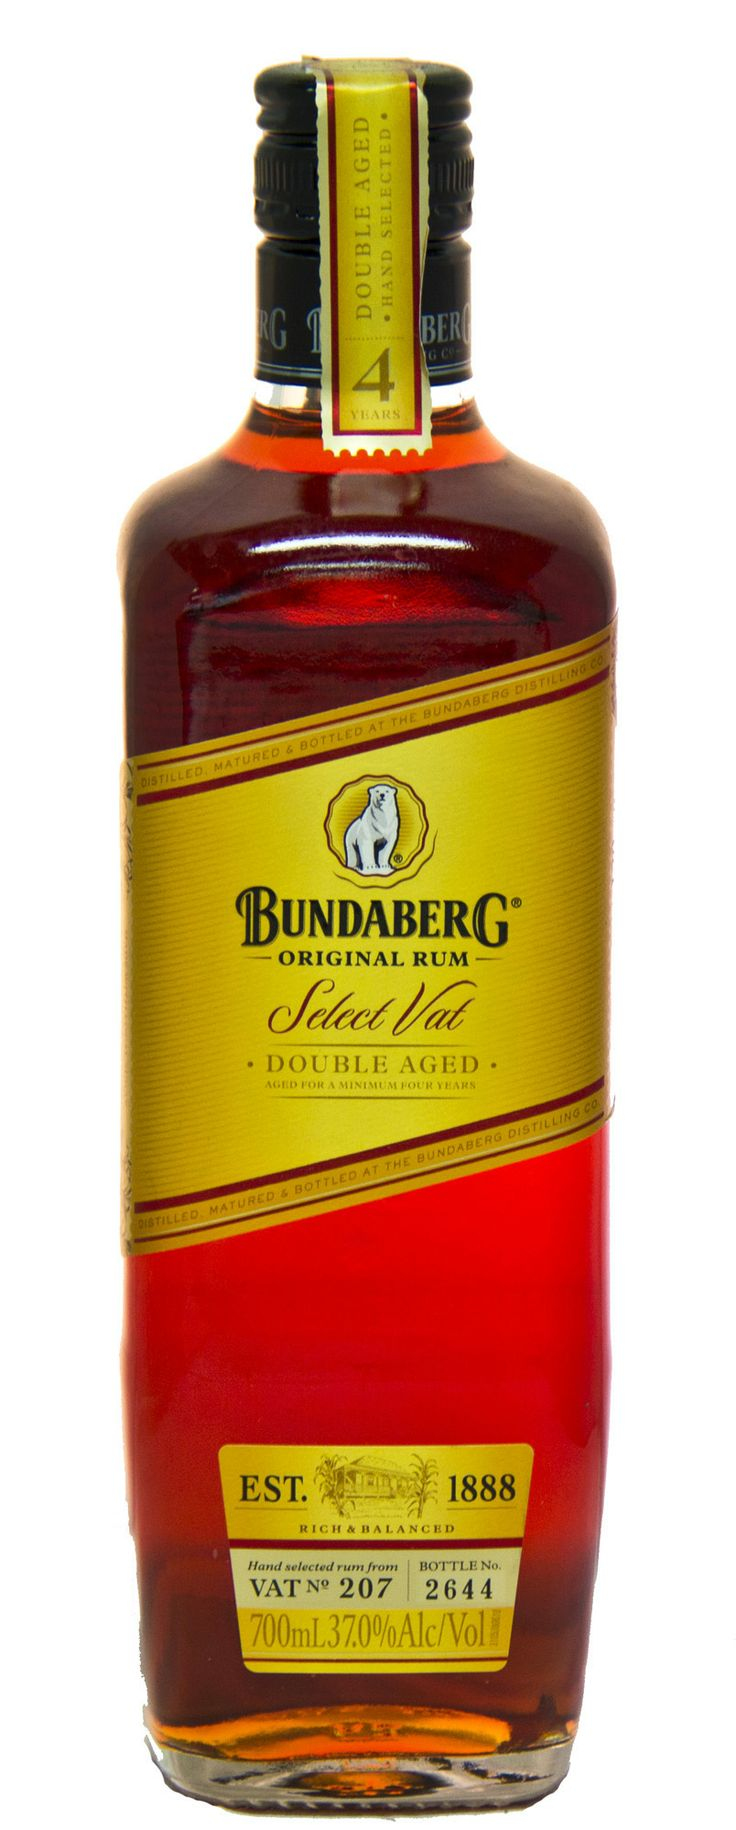 Bundaberg rum distilling co the best rum world wide for Best soda with rum